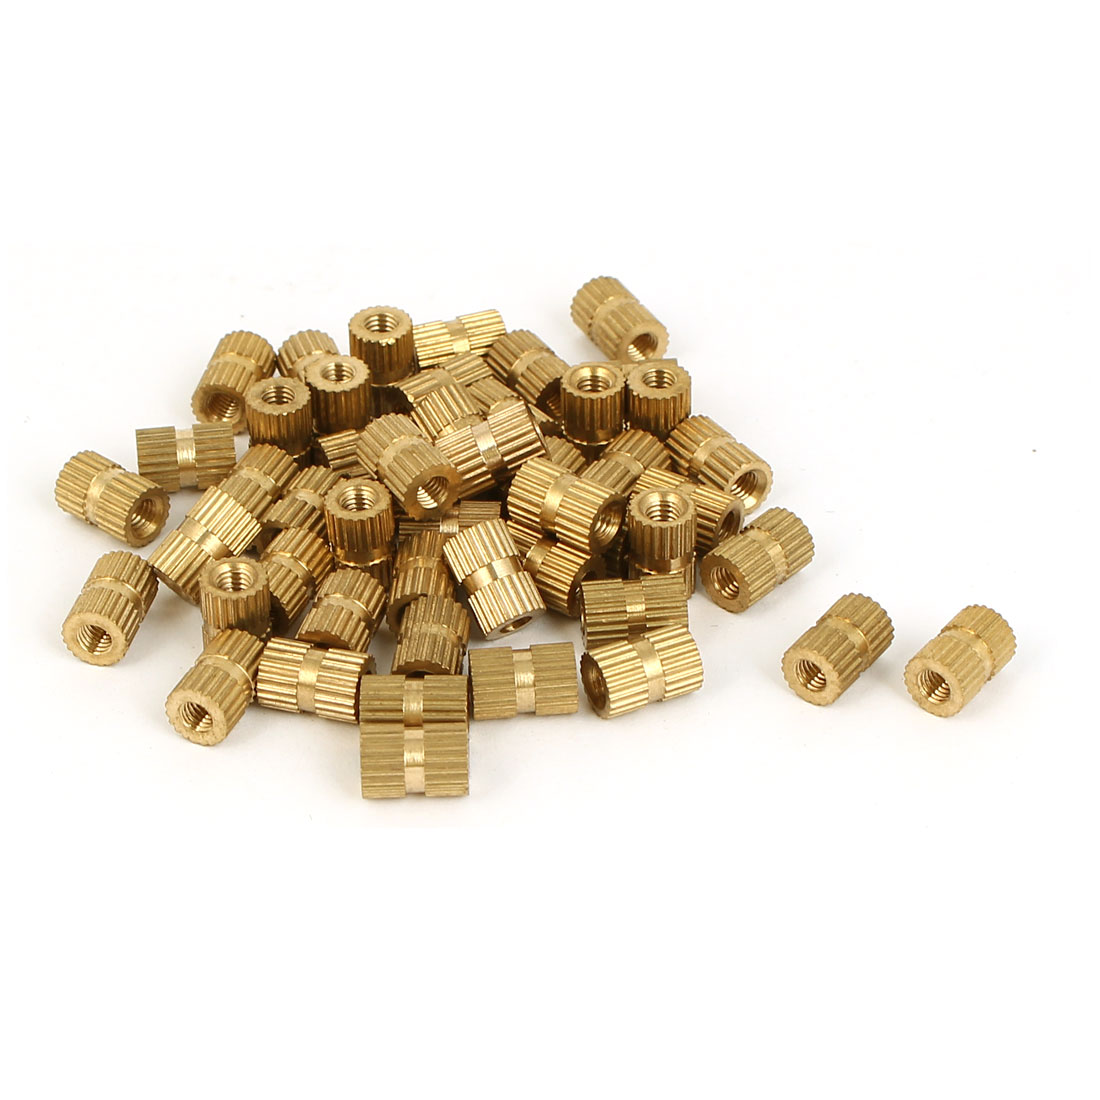 M3 Female Threaded Insert Embedded Brass Knurled Nuts Hardware Gold Tone 50 Pcs